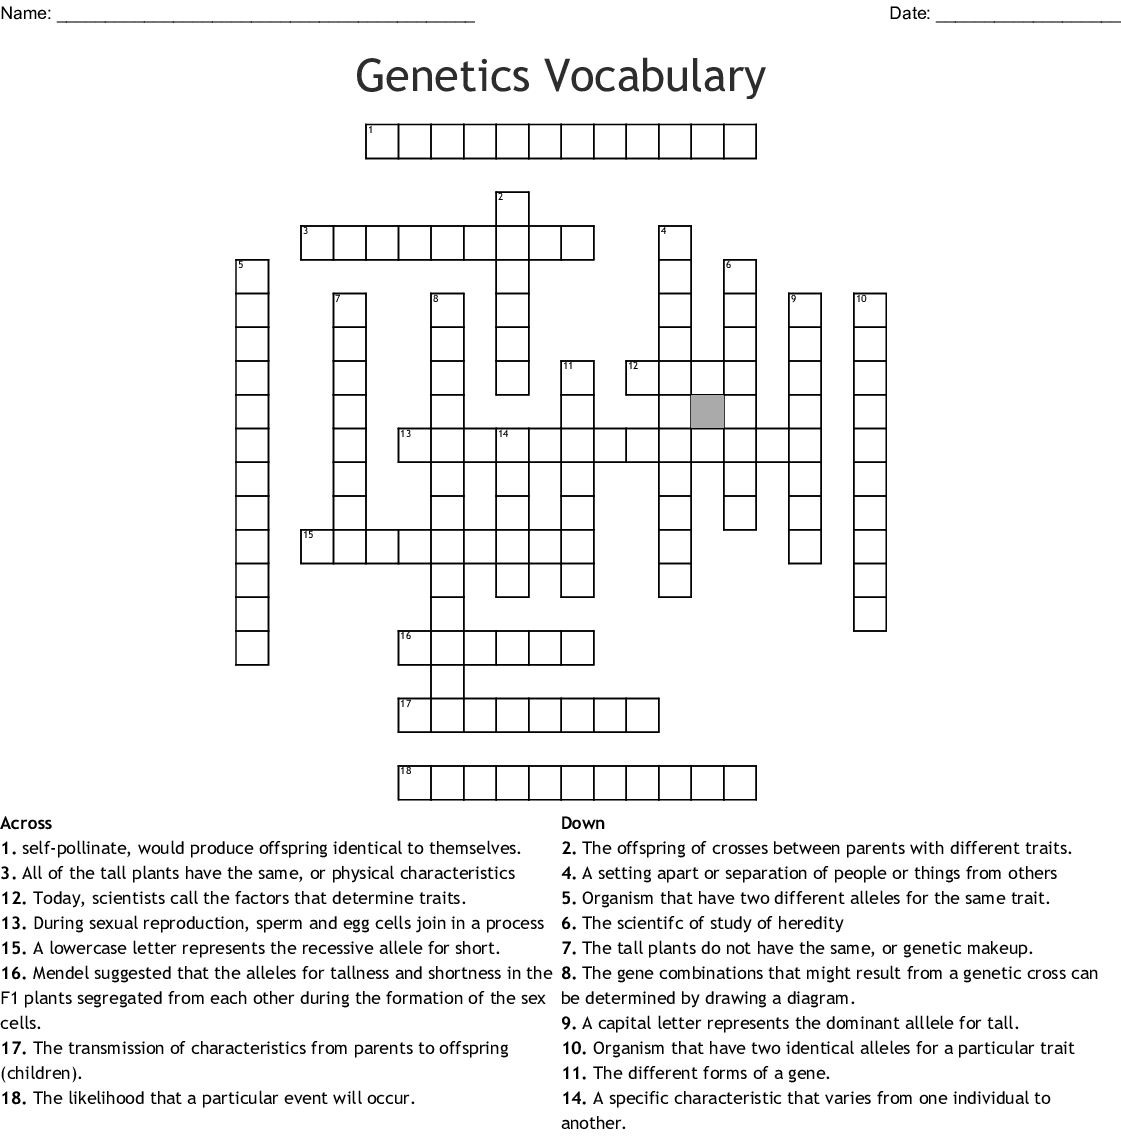 Genetics Vocabulary Worksheet Crossword Answer Key